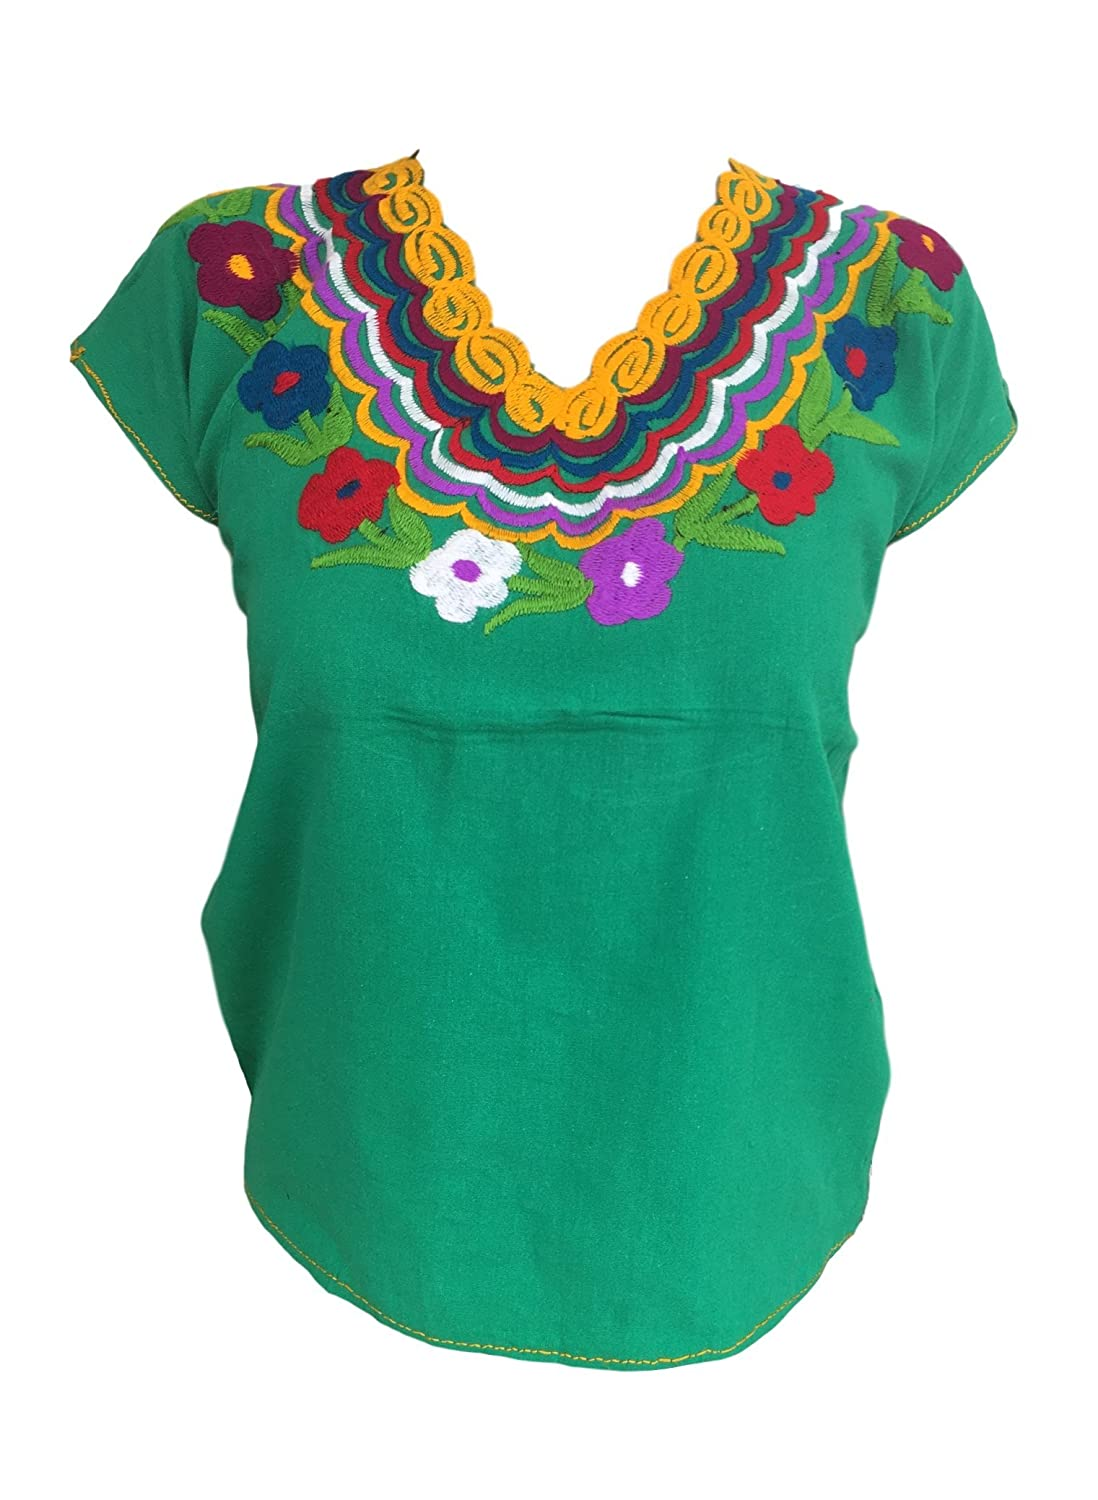 82a61a5502227 Floral mexican blouse embroidered authentic handmade cotton green large at amazon  womens clothing store jpg 1098x1500